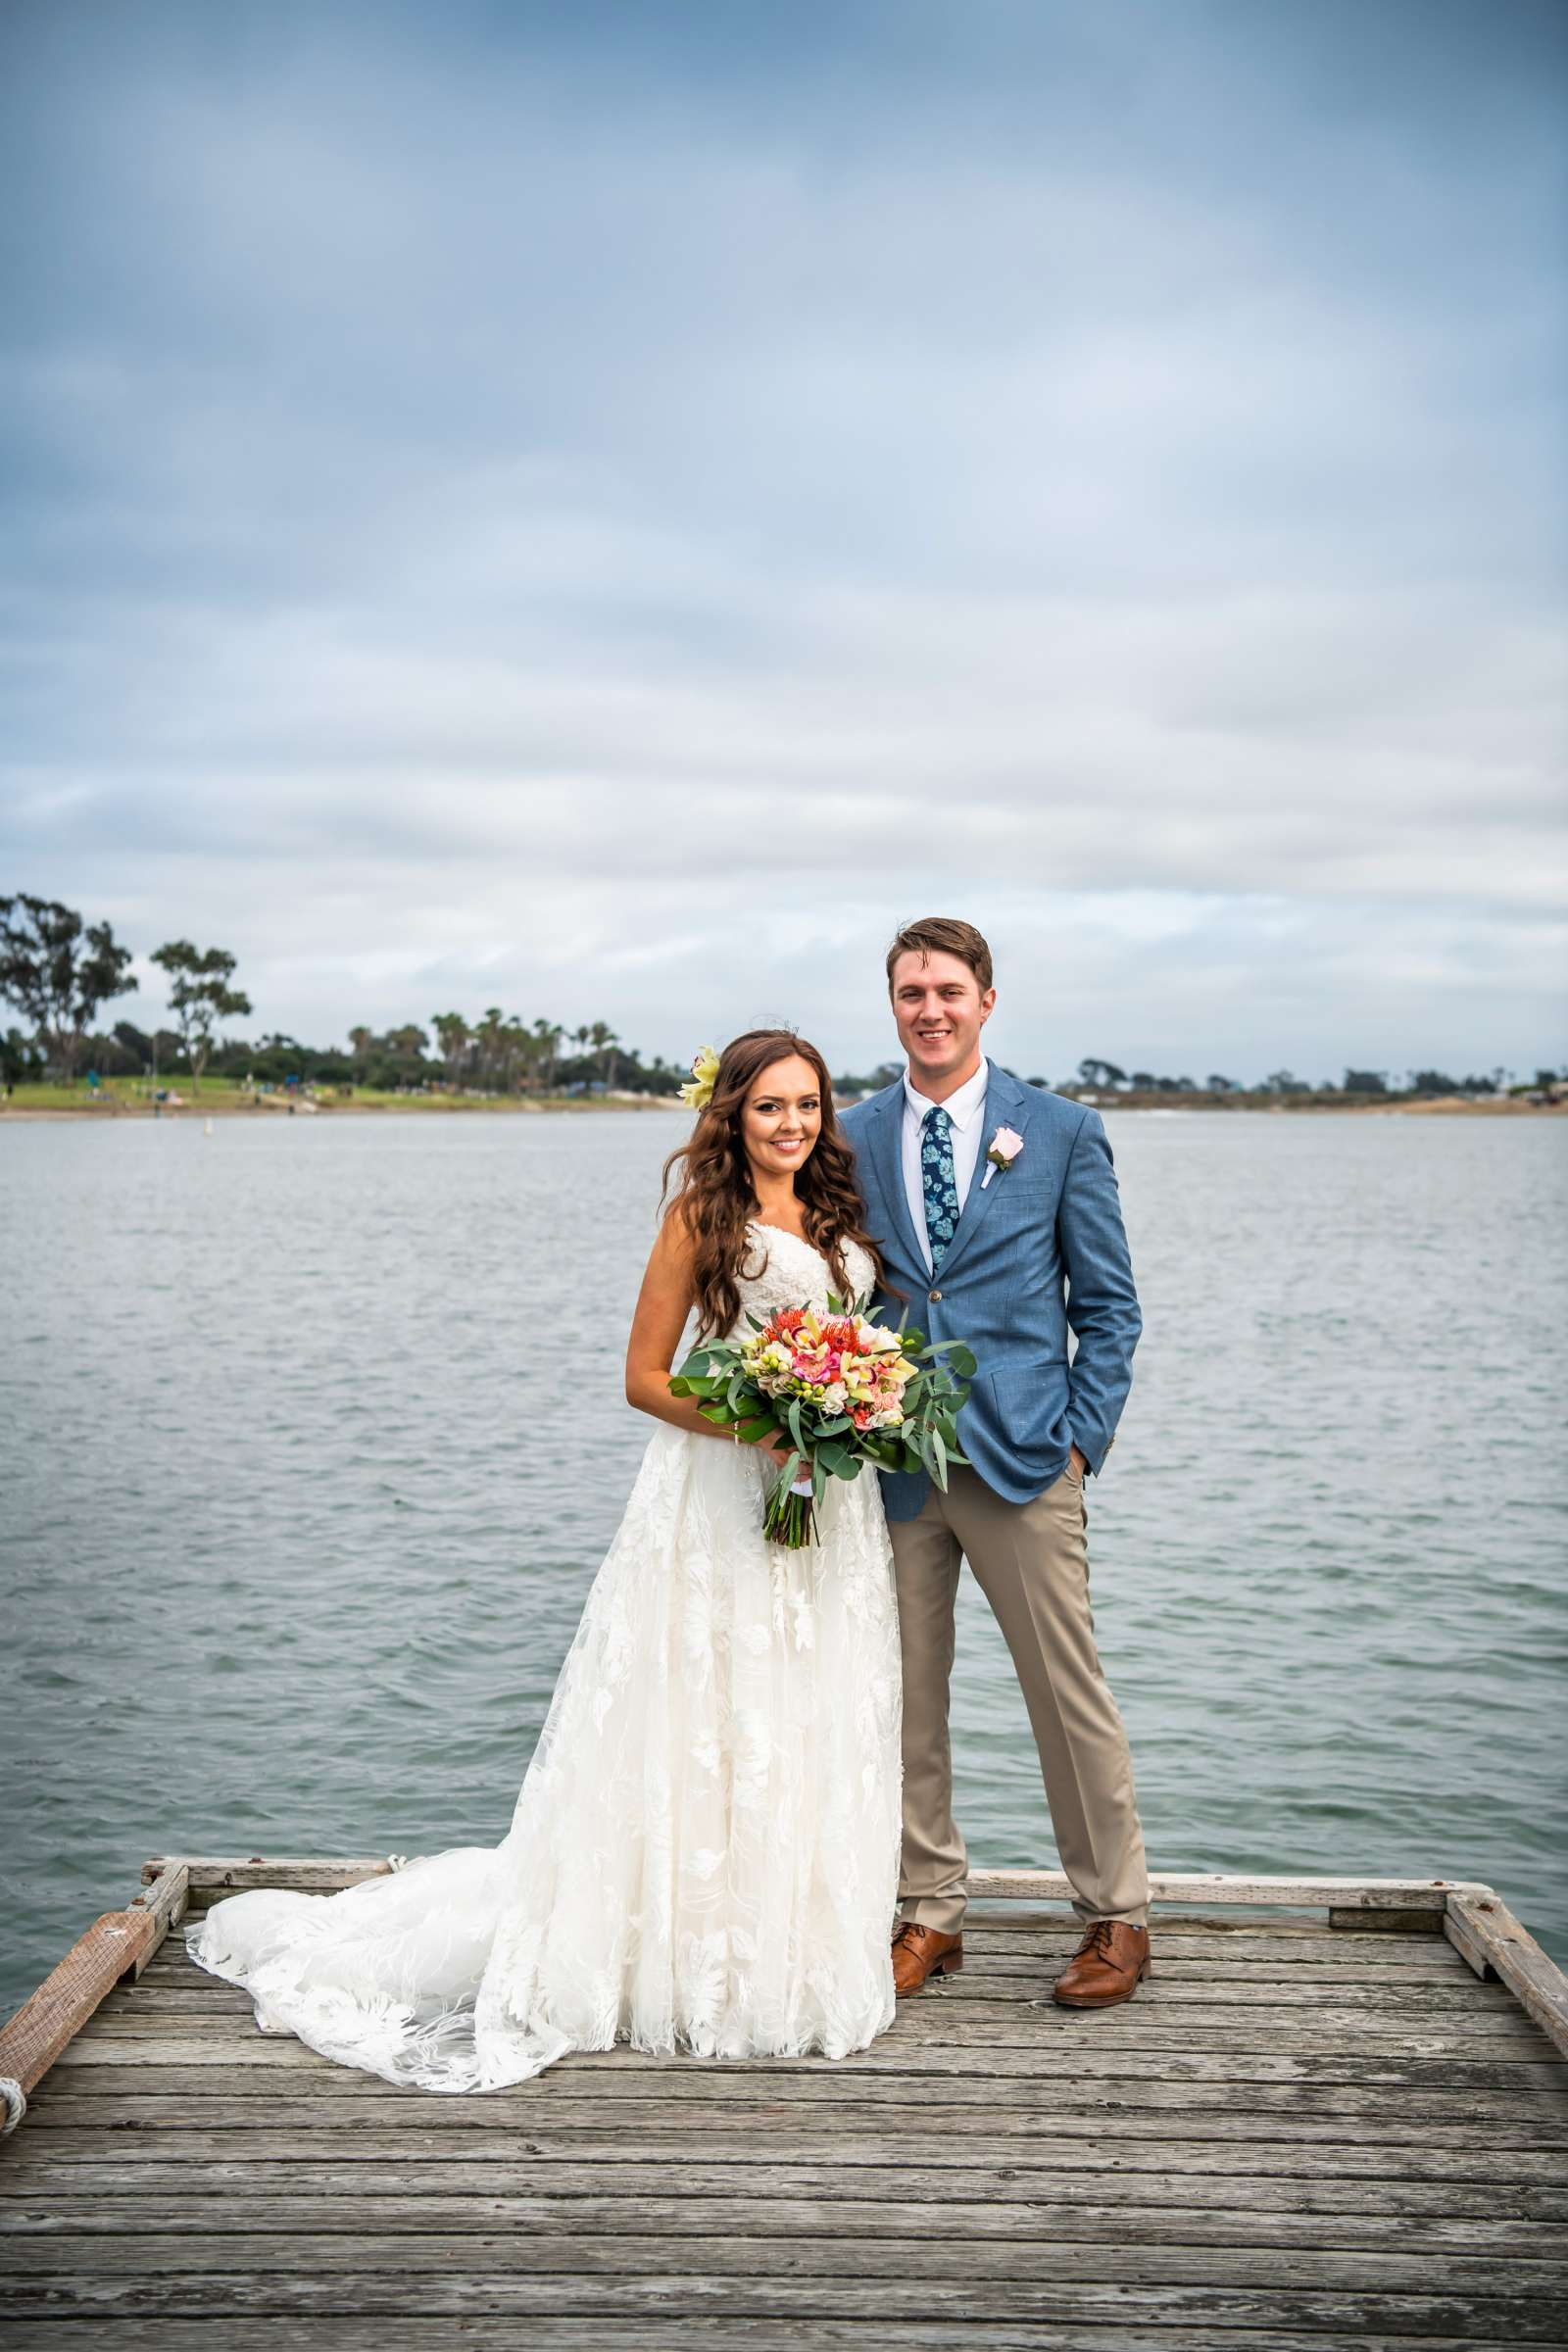 San Diego Mission Bay Resort Wedding coordinated by Cafe Au Love, Lauren and Adam Wedding Photo #9 by True Photography